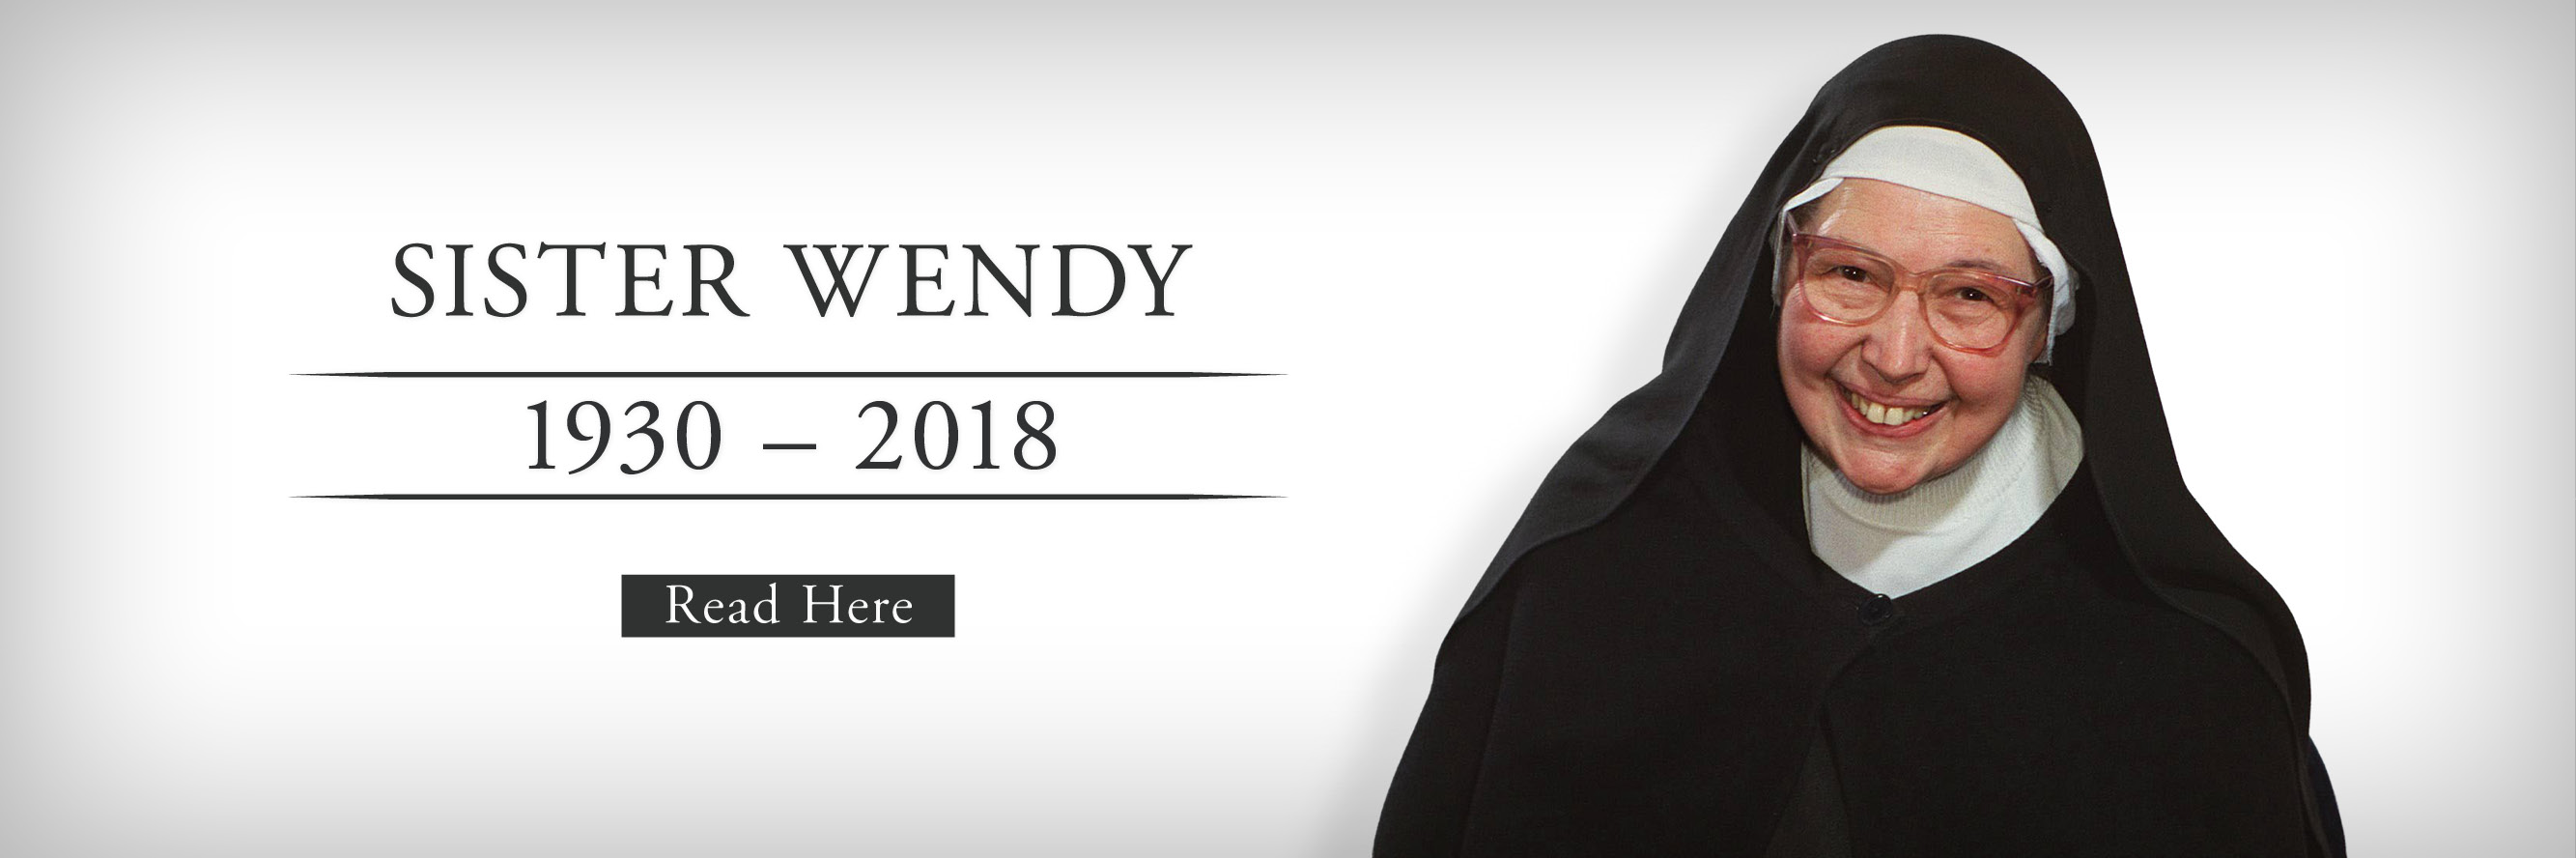 Remembering Sister Wendy